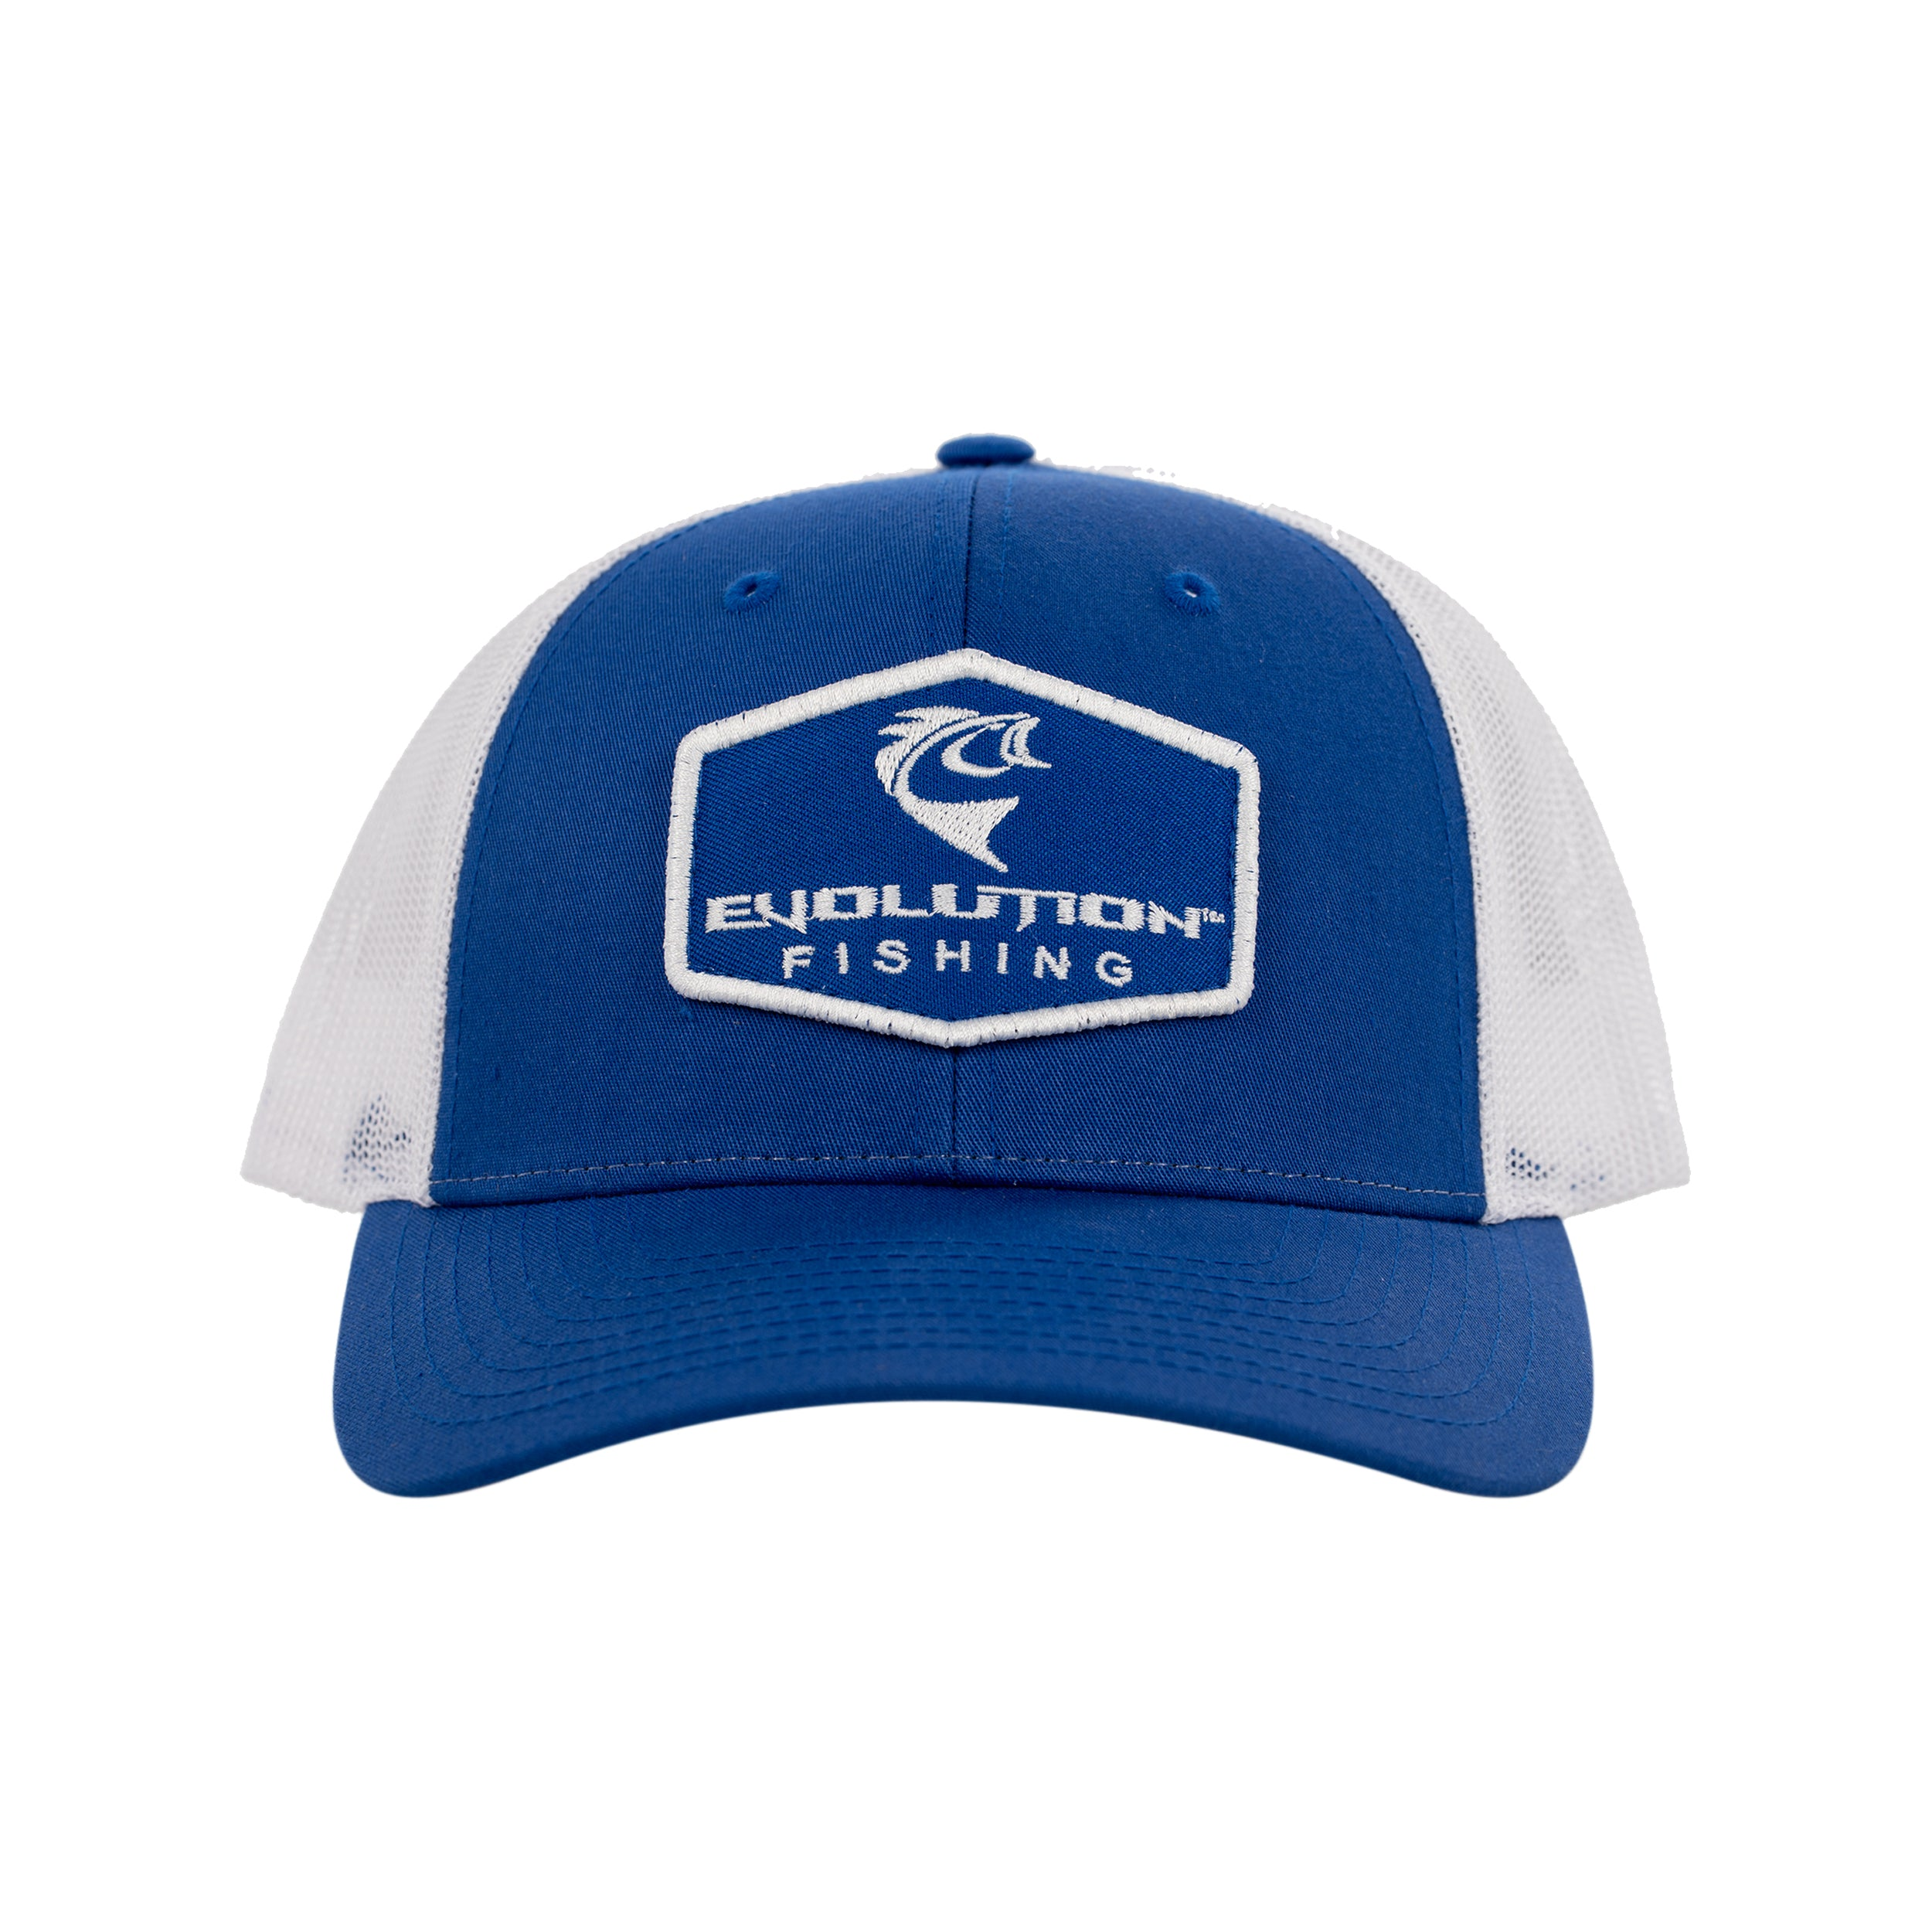 Evolution Fishing Hat - Structured